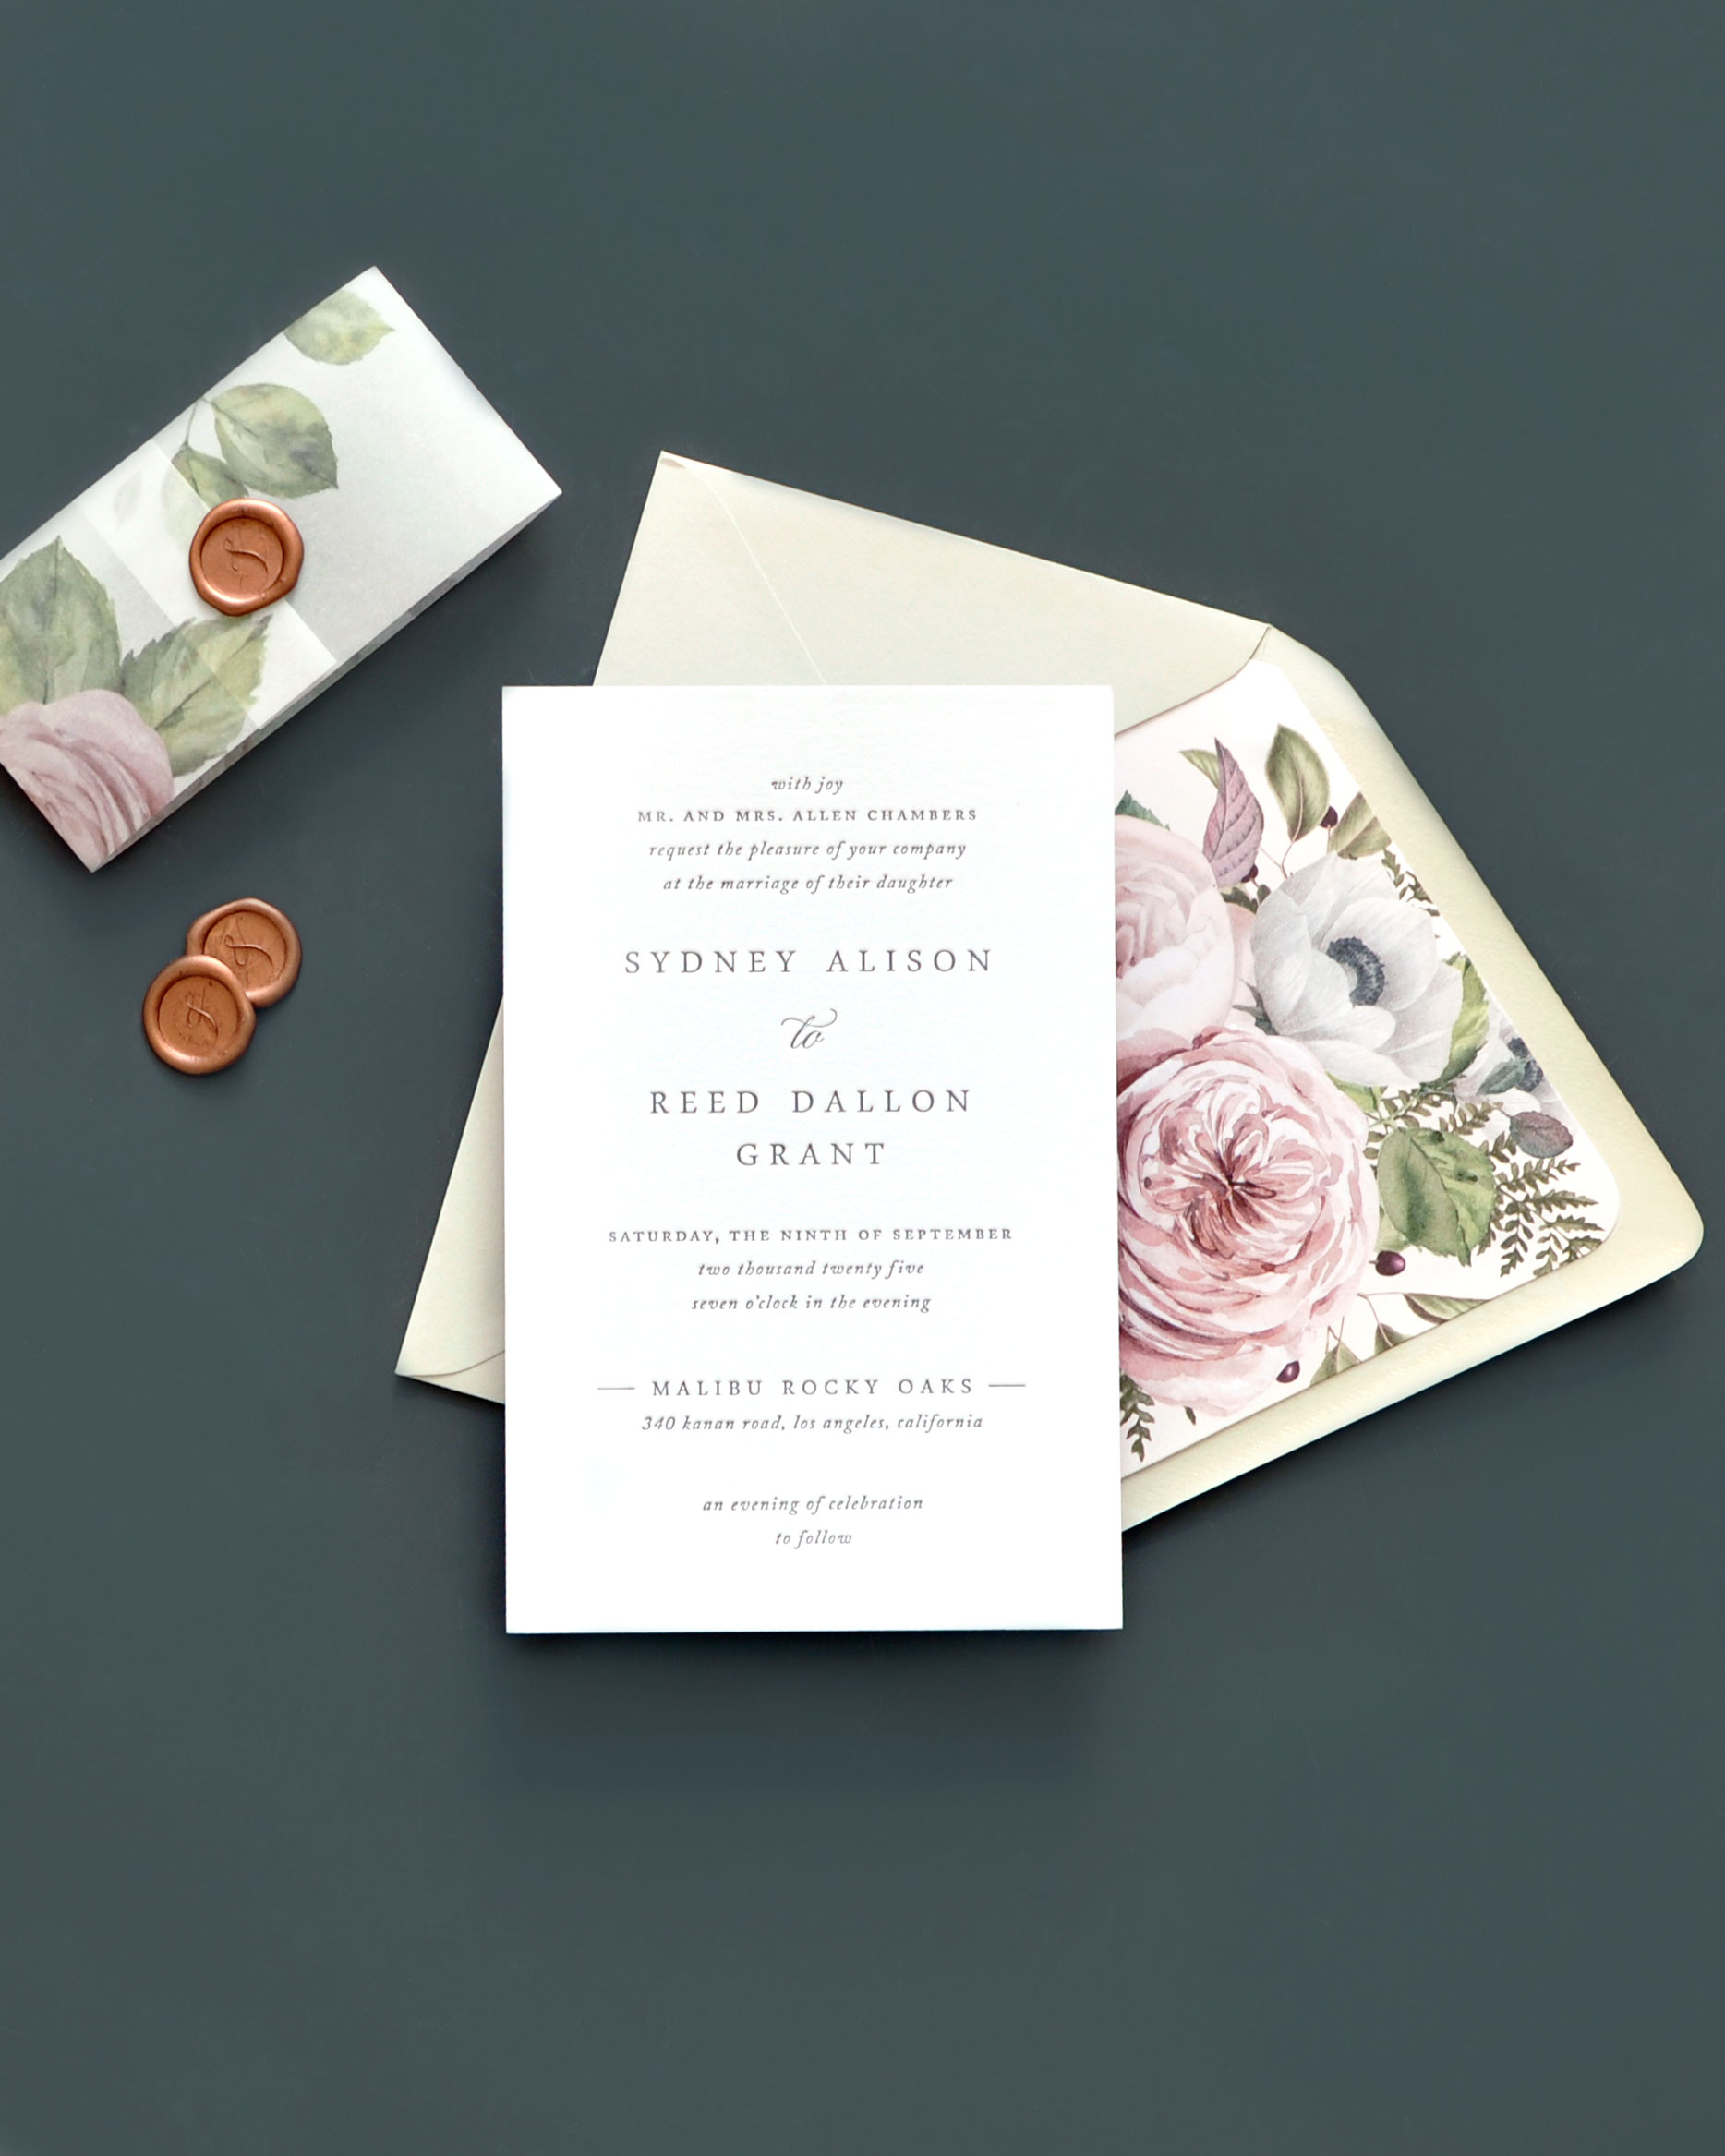 Beautiful floral envelope liner and printed vellum band are a stunning compliment to this modern-yet-traditional wedding invitation.  The letterpress invitations by Smitten on Paper are available in Fairfax, VA at Staccato.